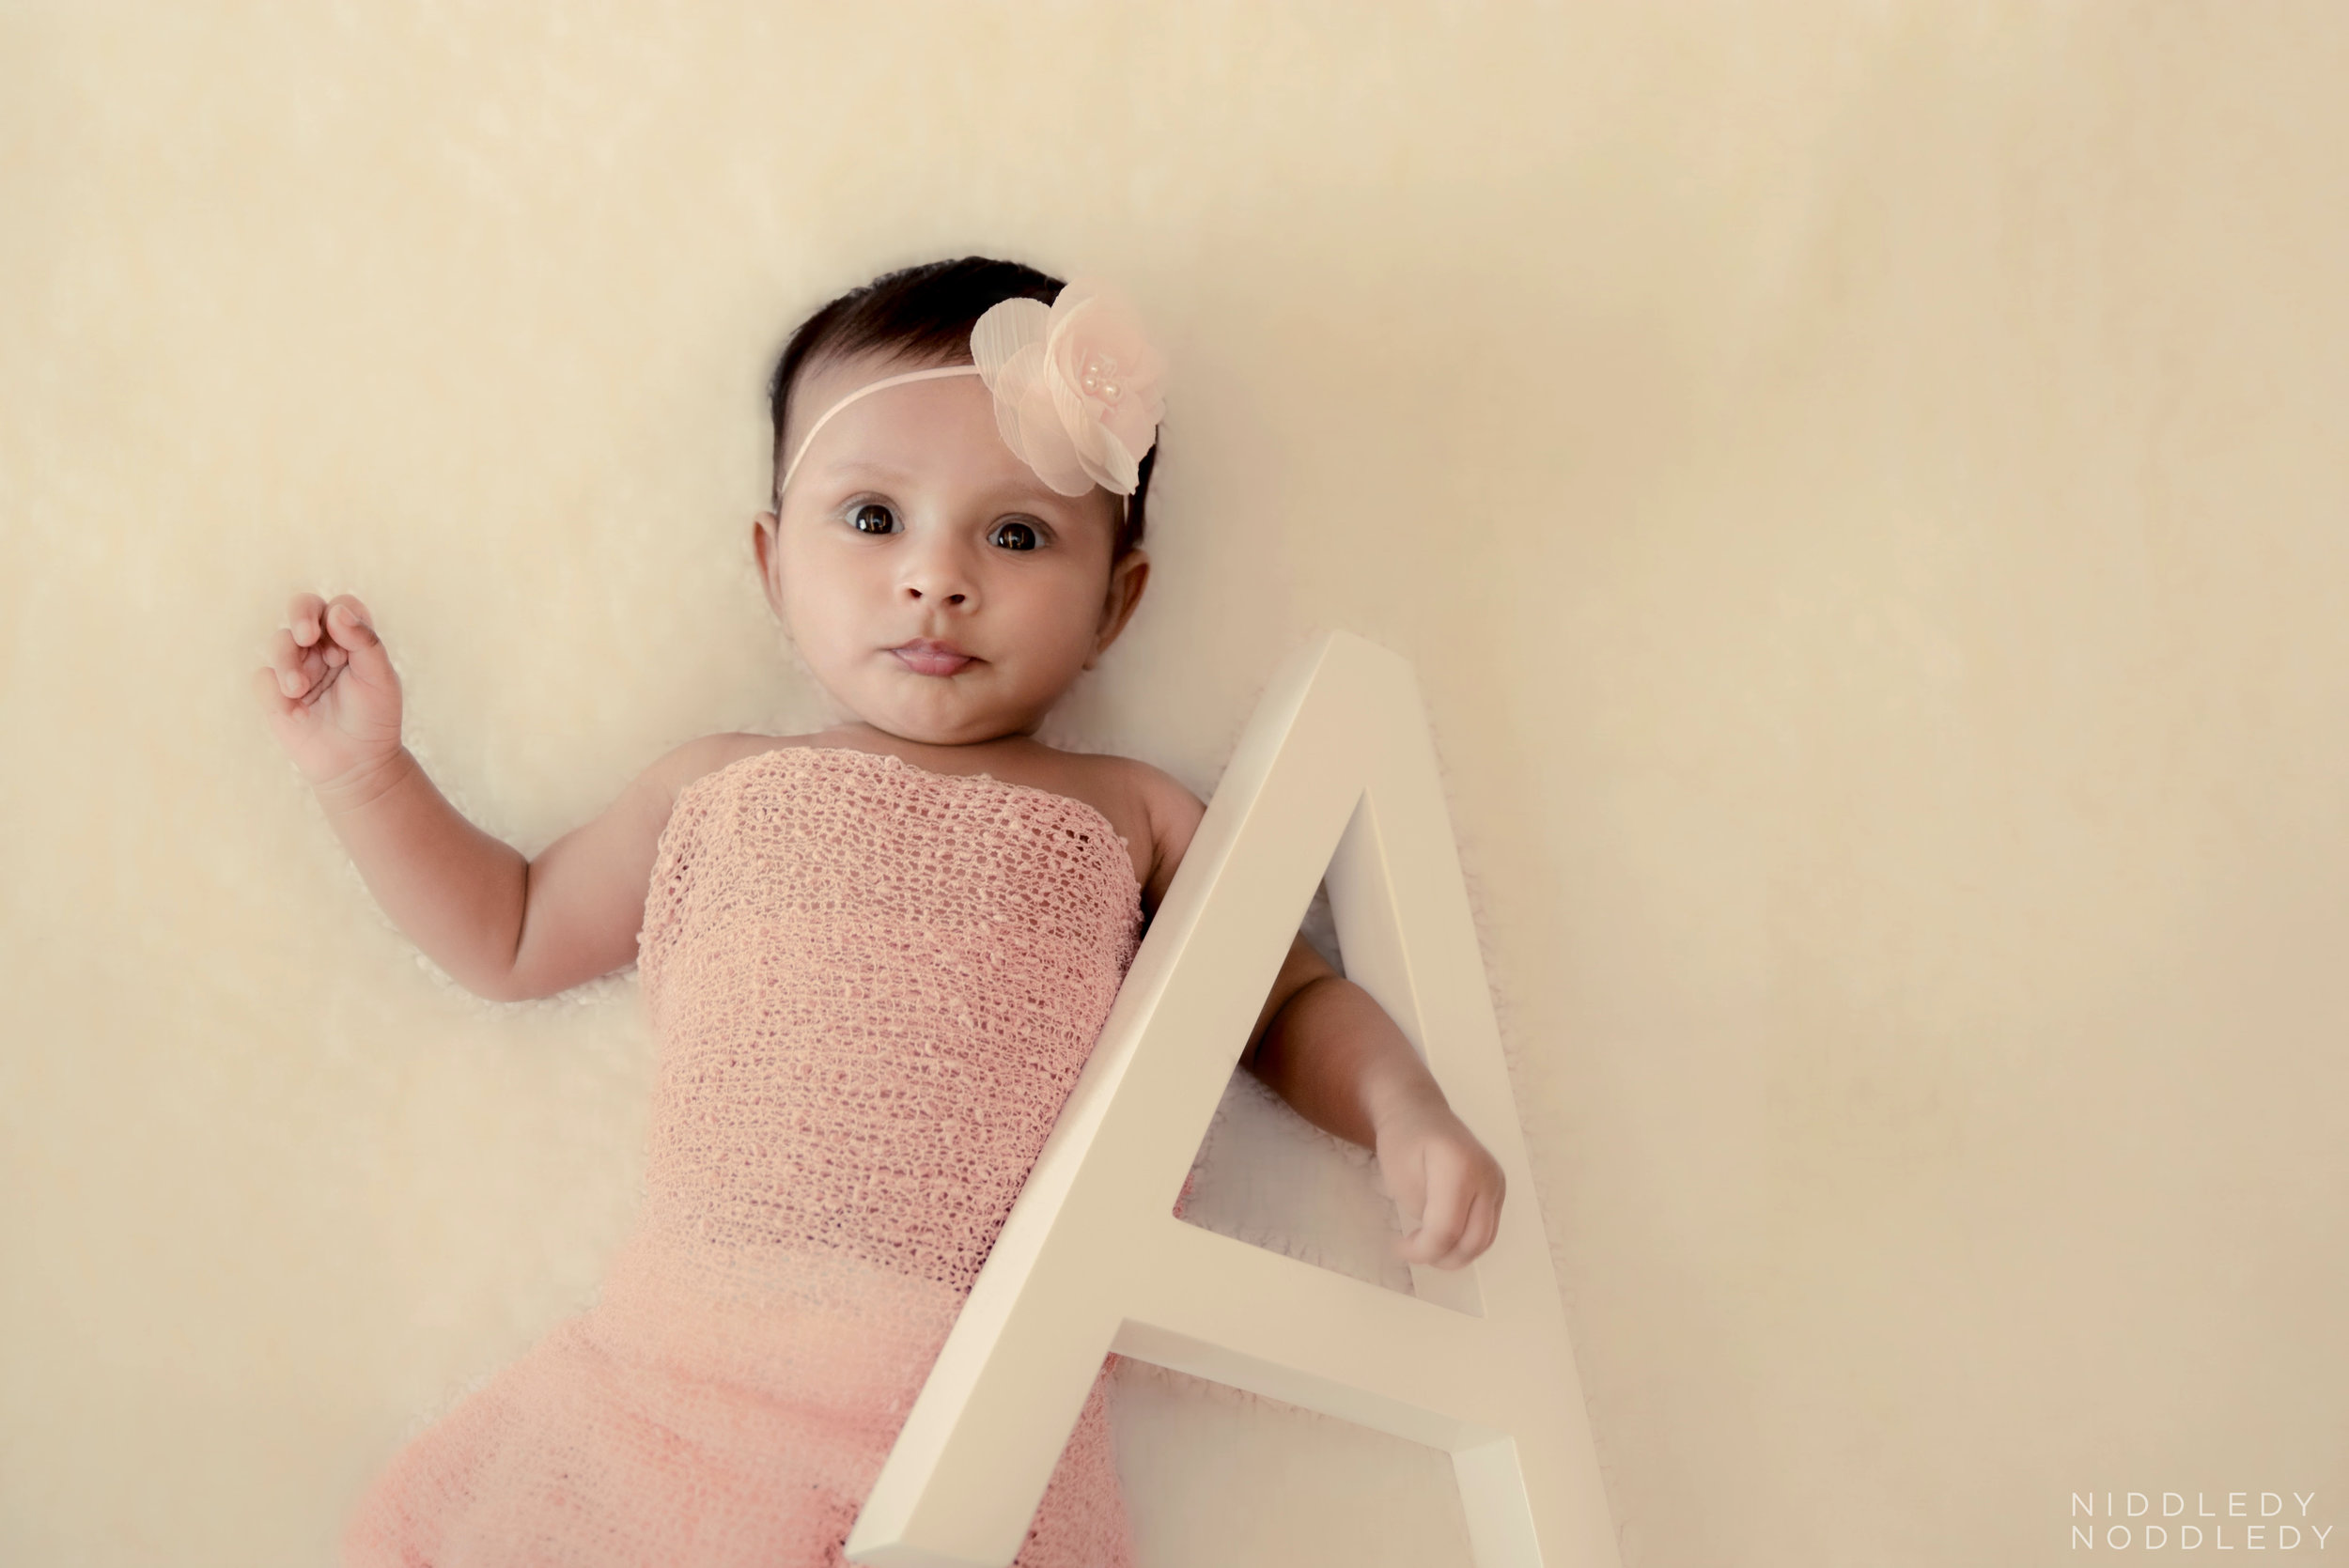 Anaisha Baby Photoshoot ❤ NiddledyNoddledy.com ~ Bumps to Babies Photography, Kolkata - 14.jpg